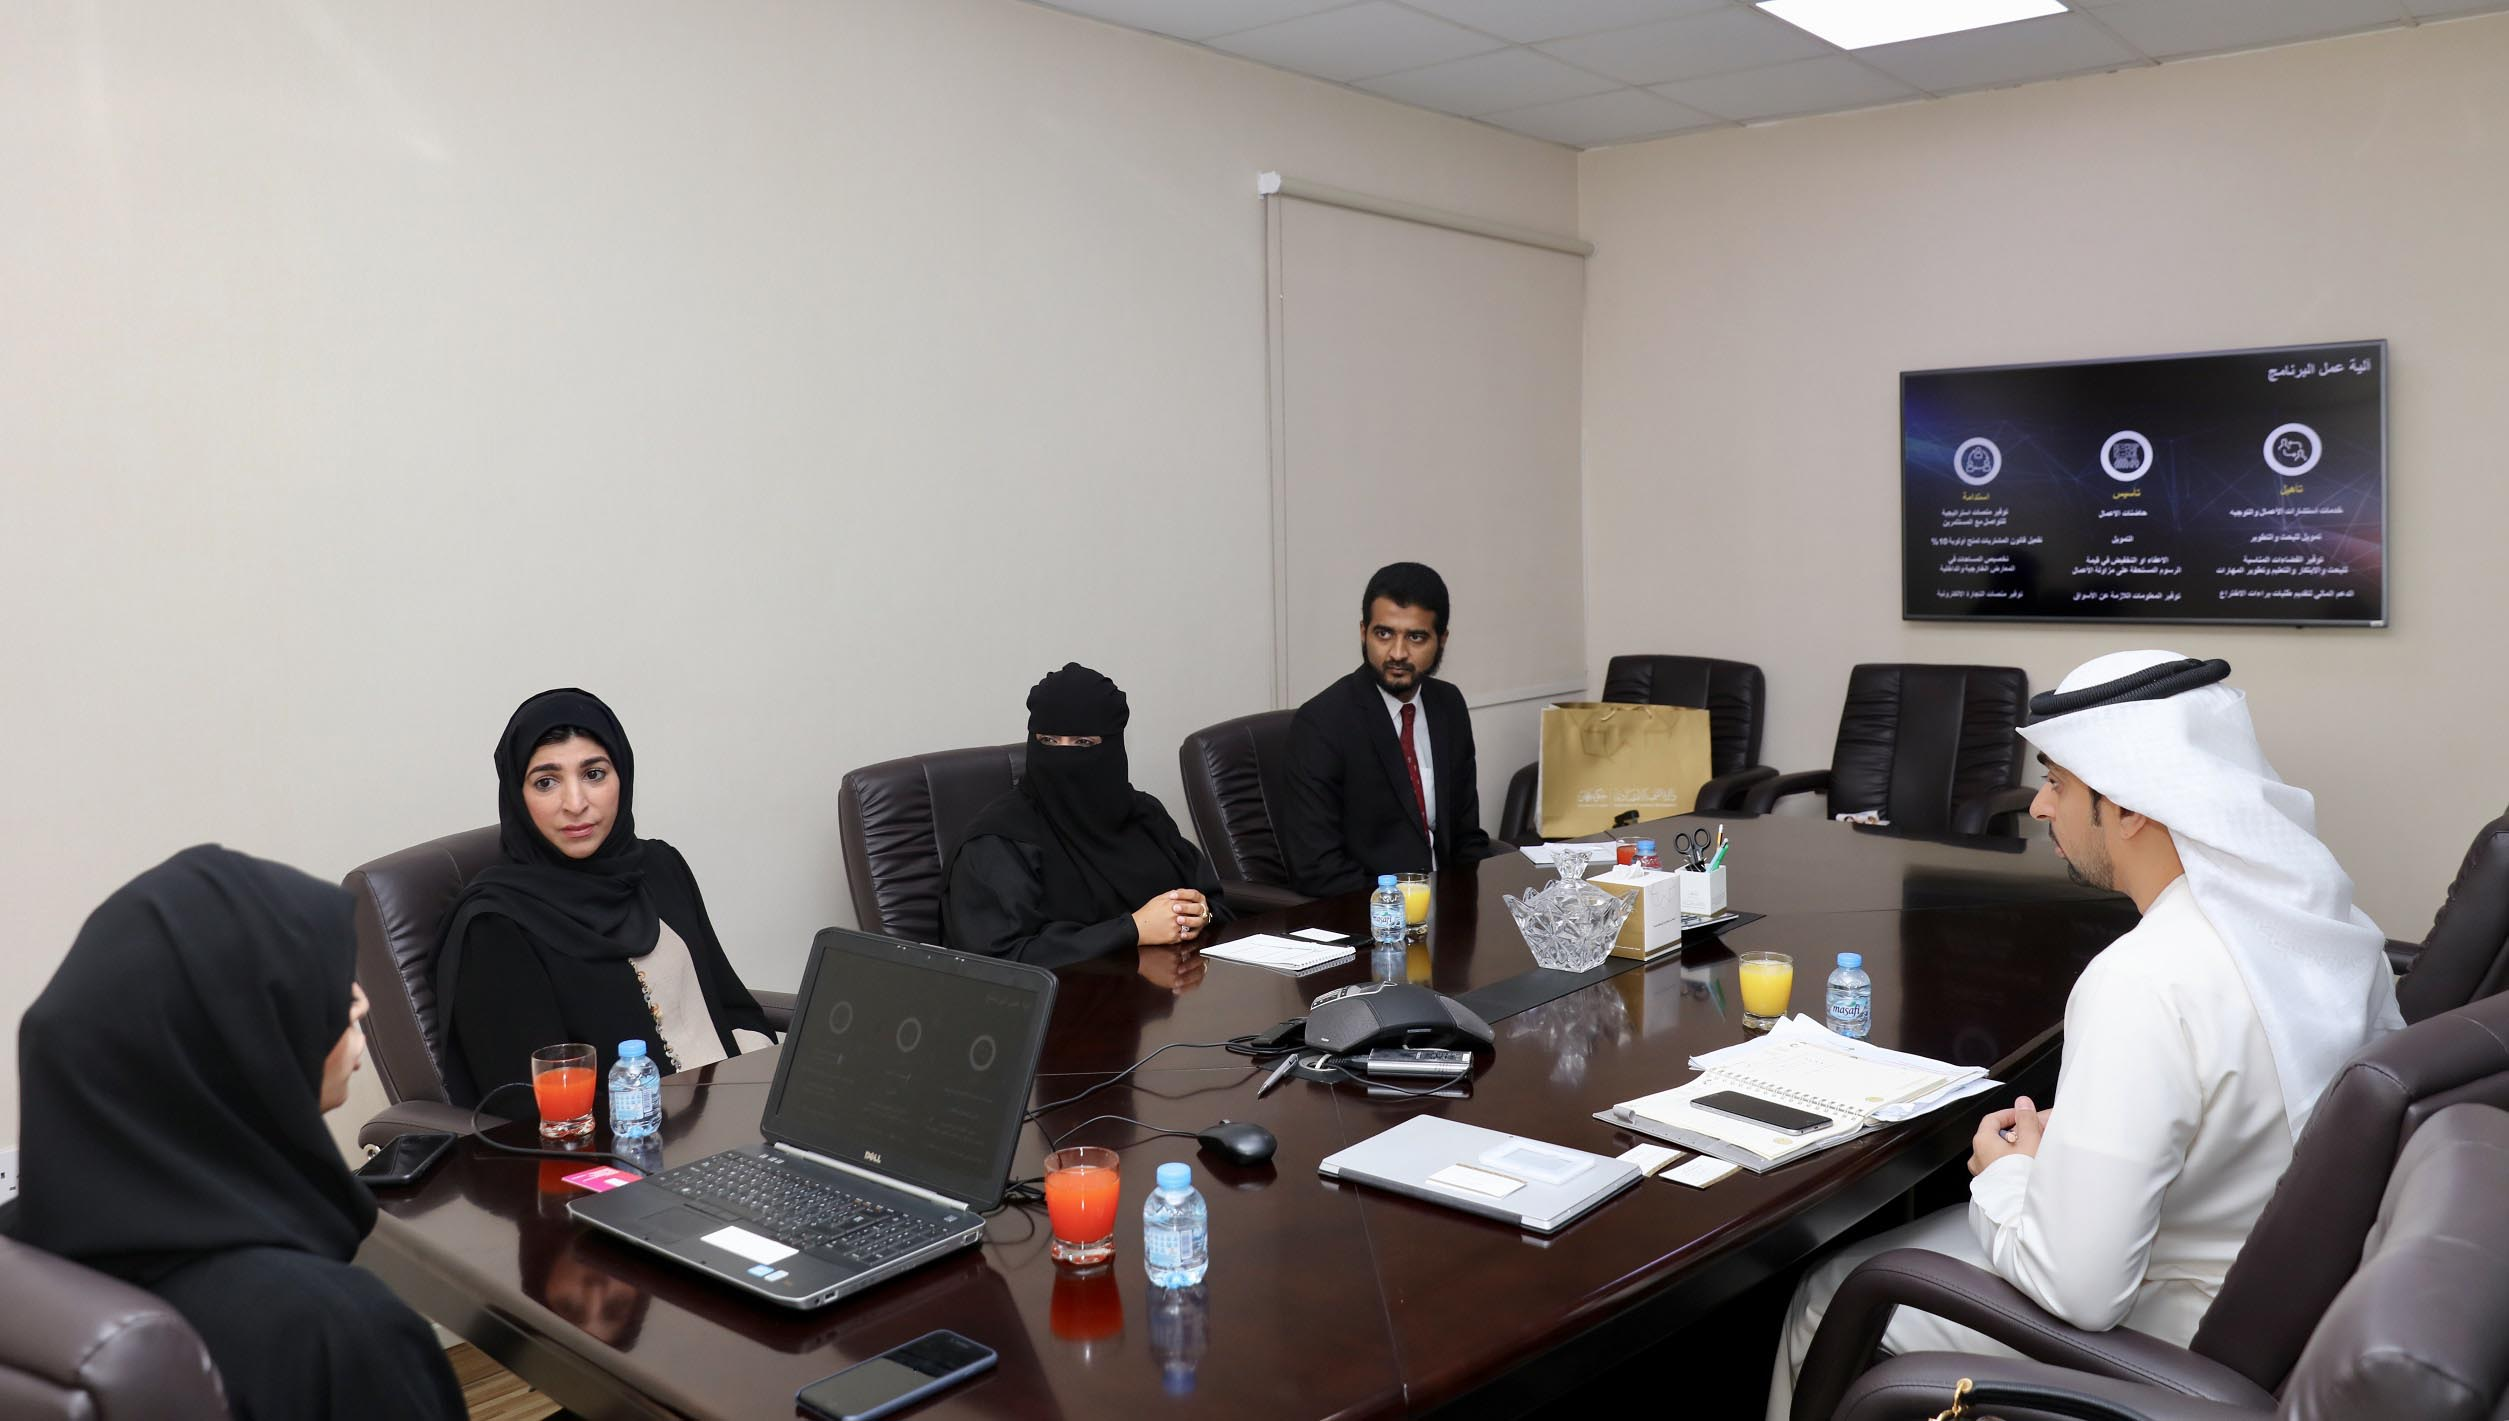 Department of Economic Development-Ajman Welcomes Visit of Delegation from Ministry of Economy